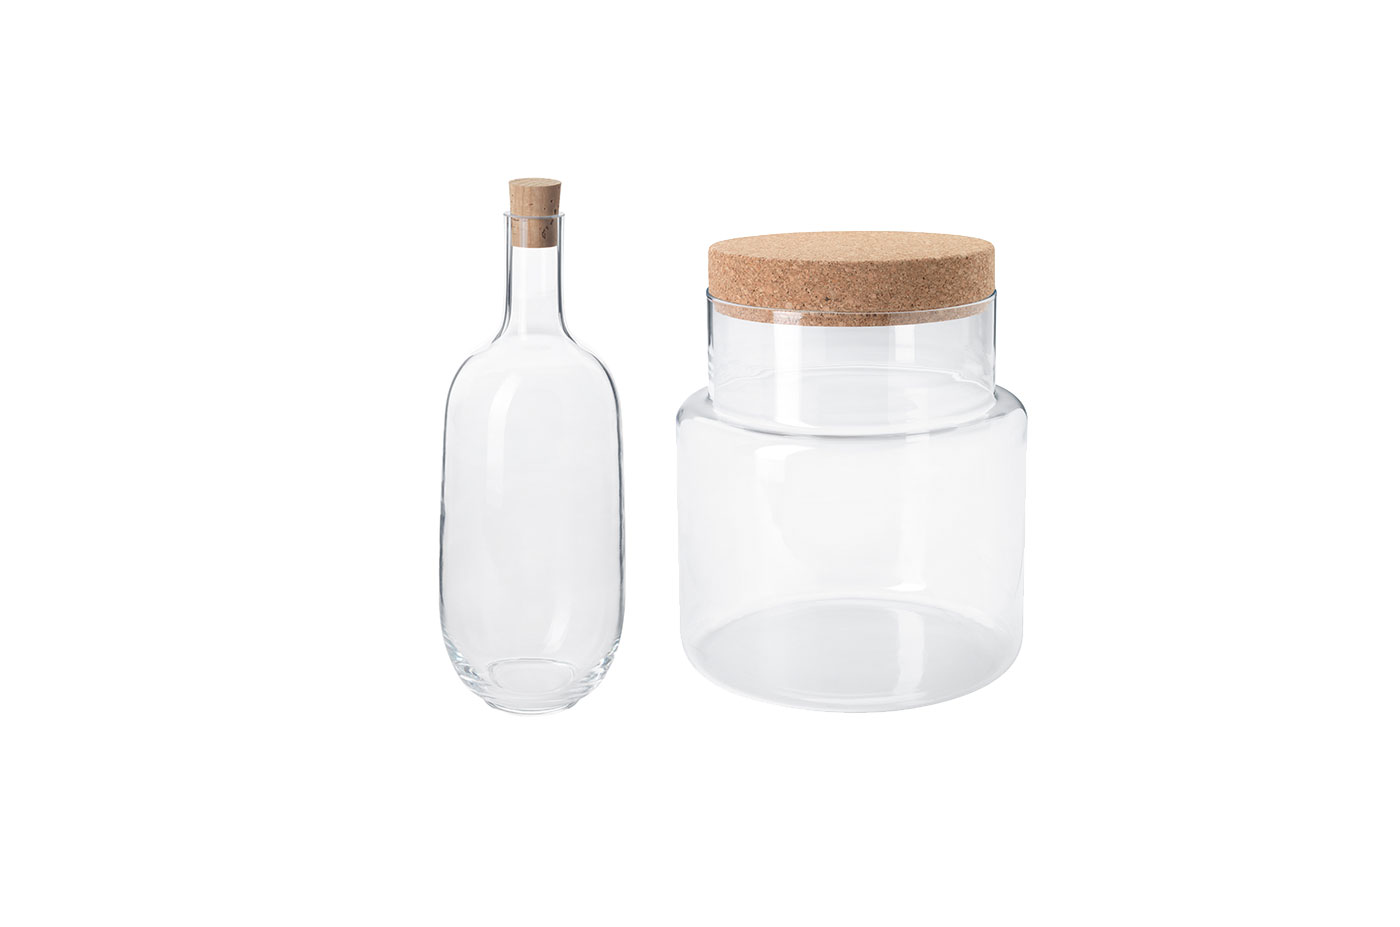 SINNERLIG Bottle and Jar With Lid